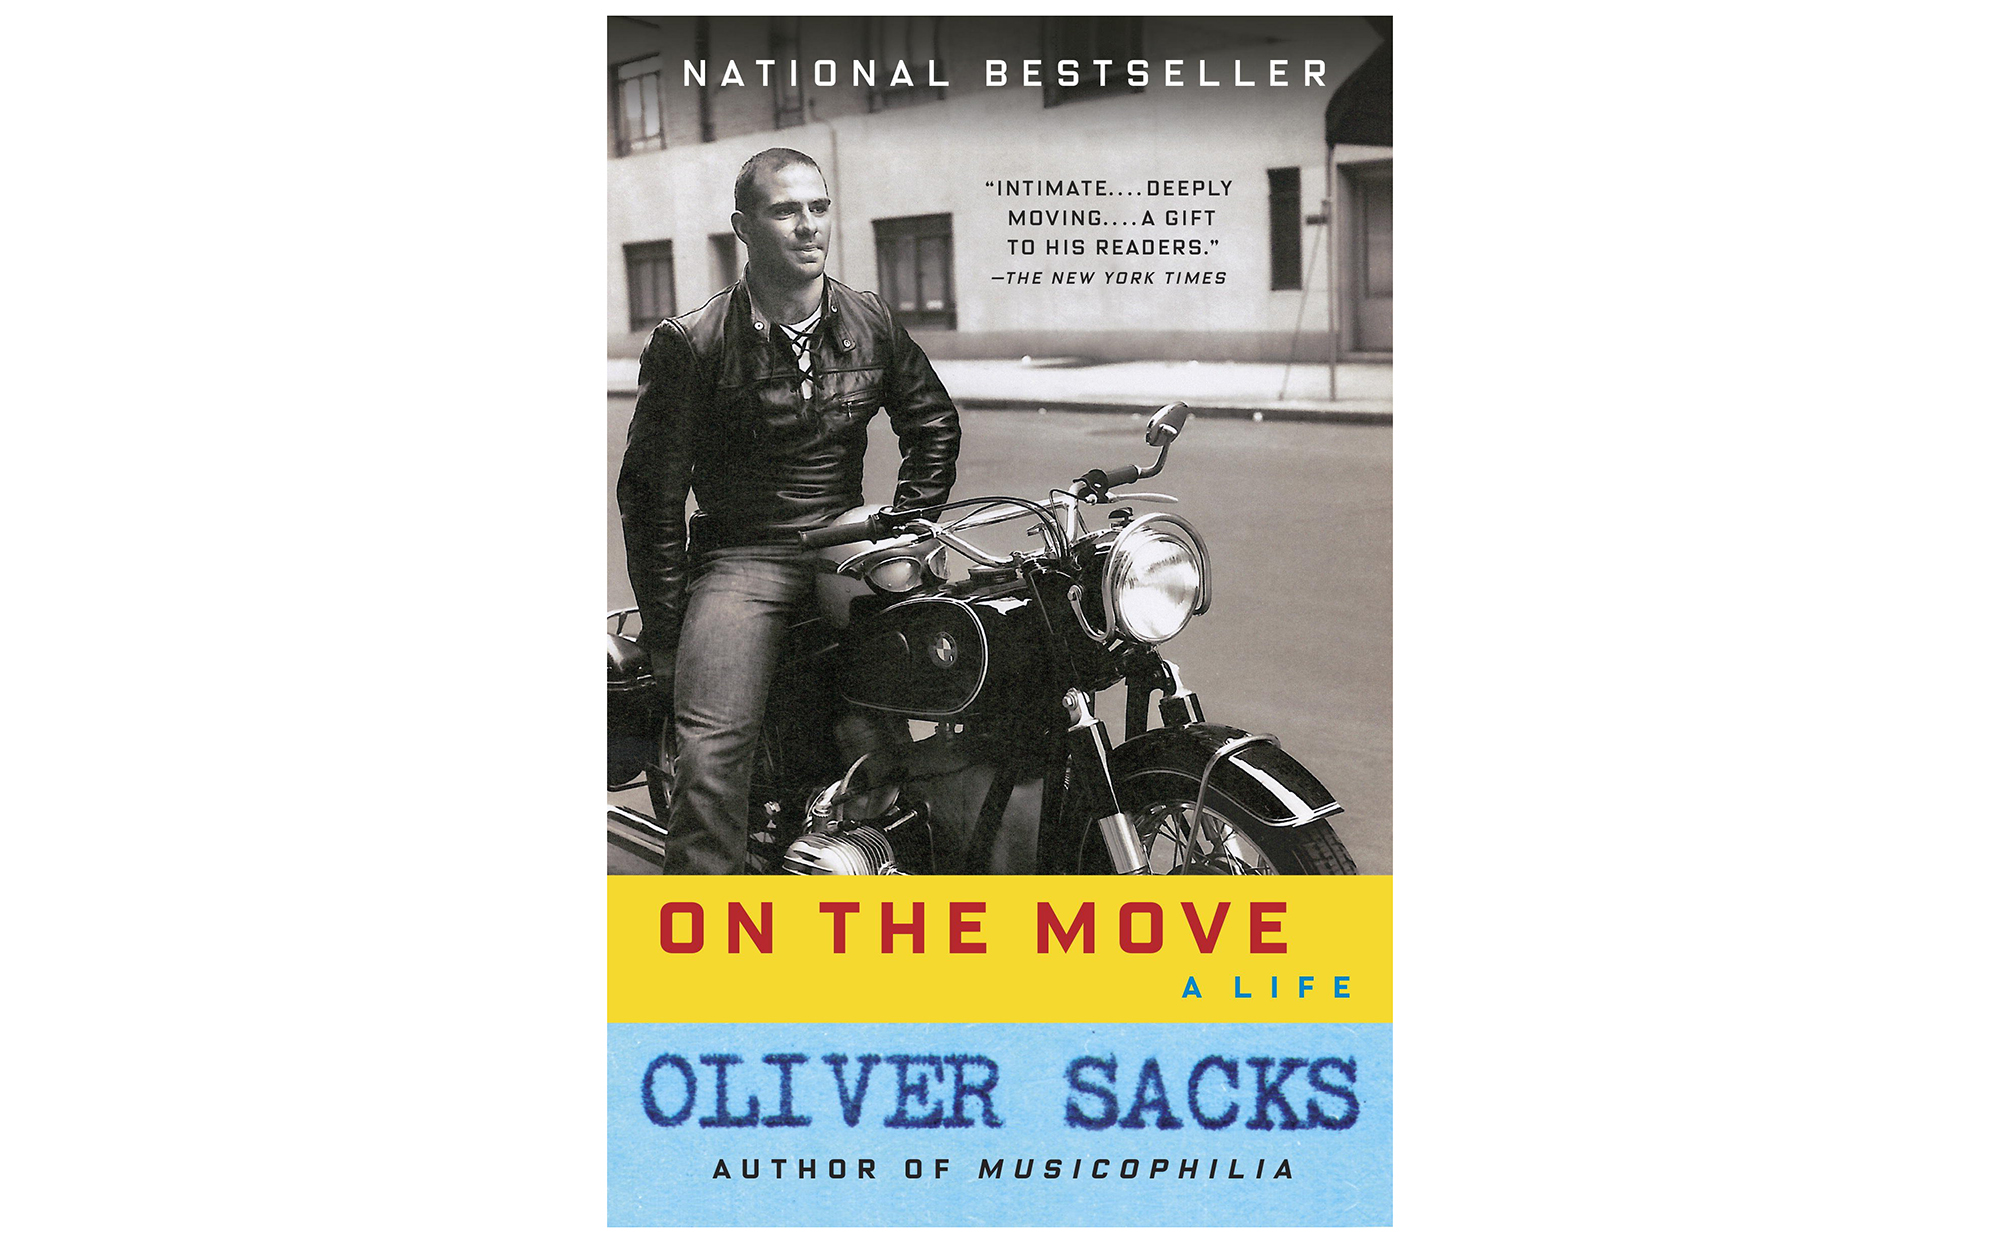 On the Move: A Life, by Oliver Sacks